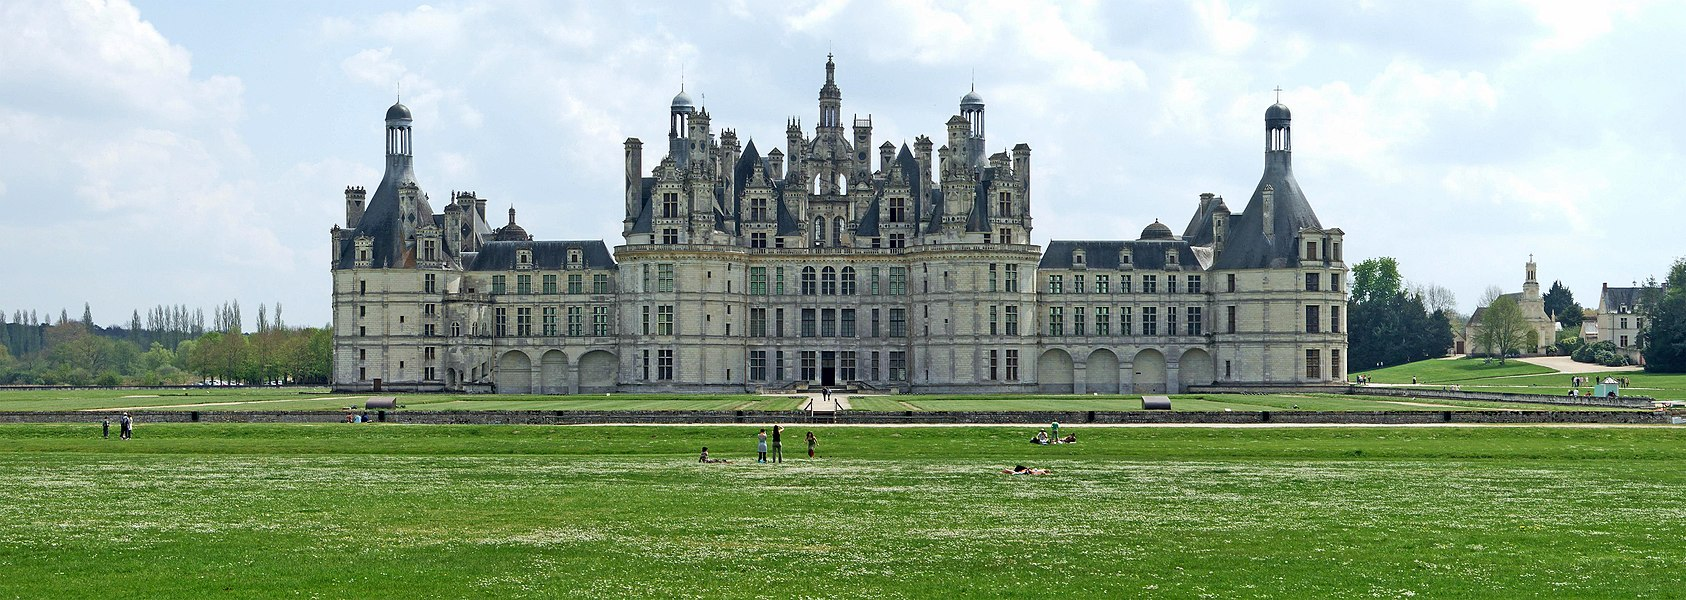 Panorama of Château de Chambord, France.